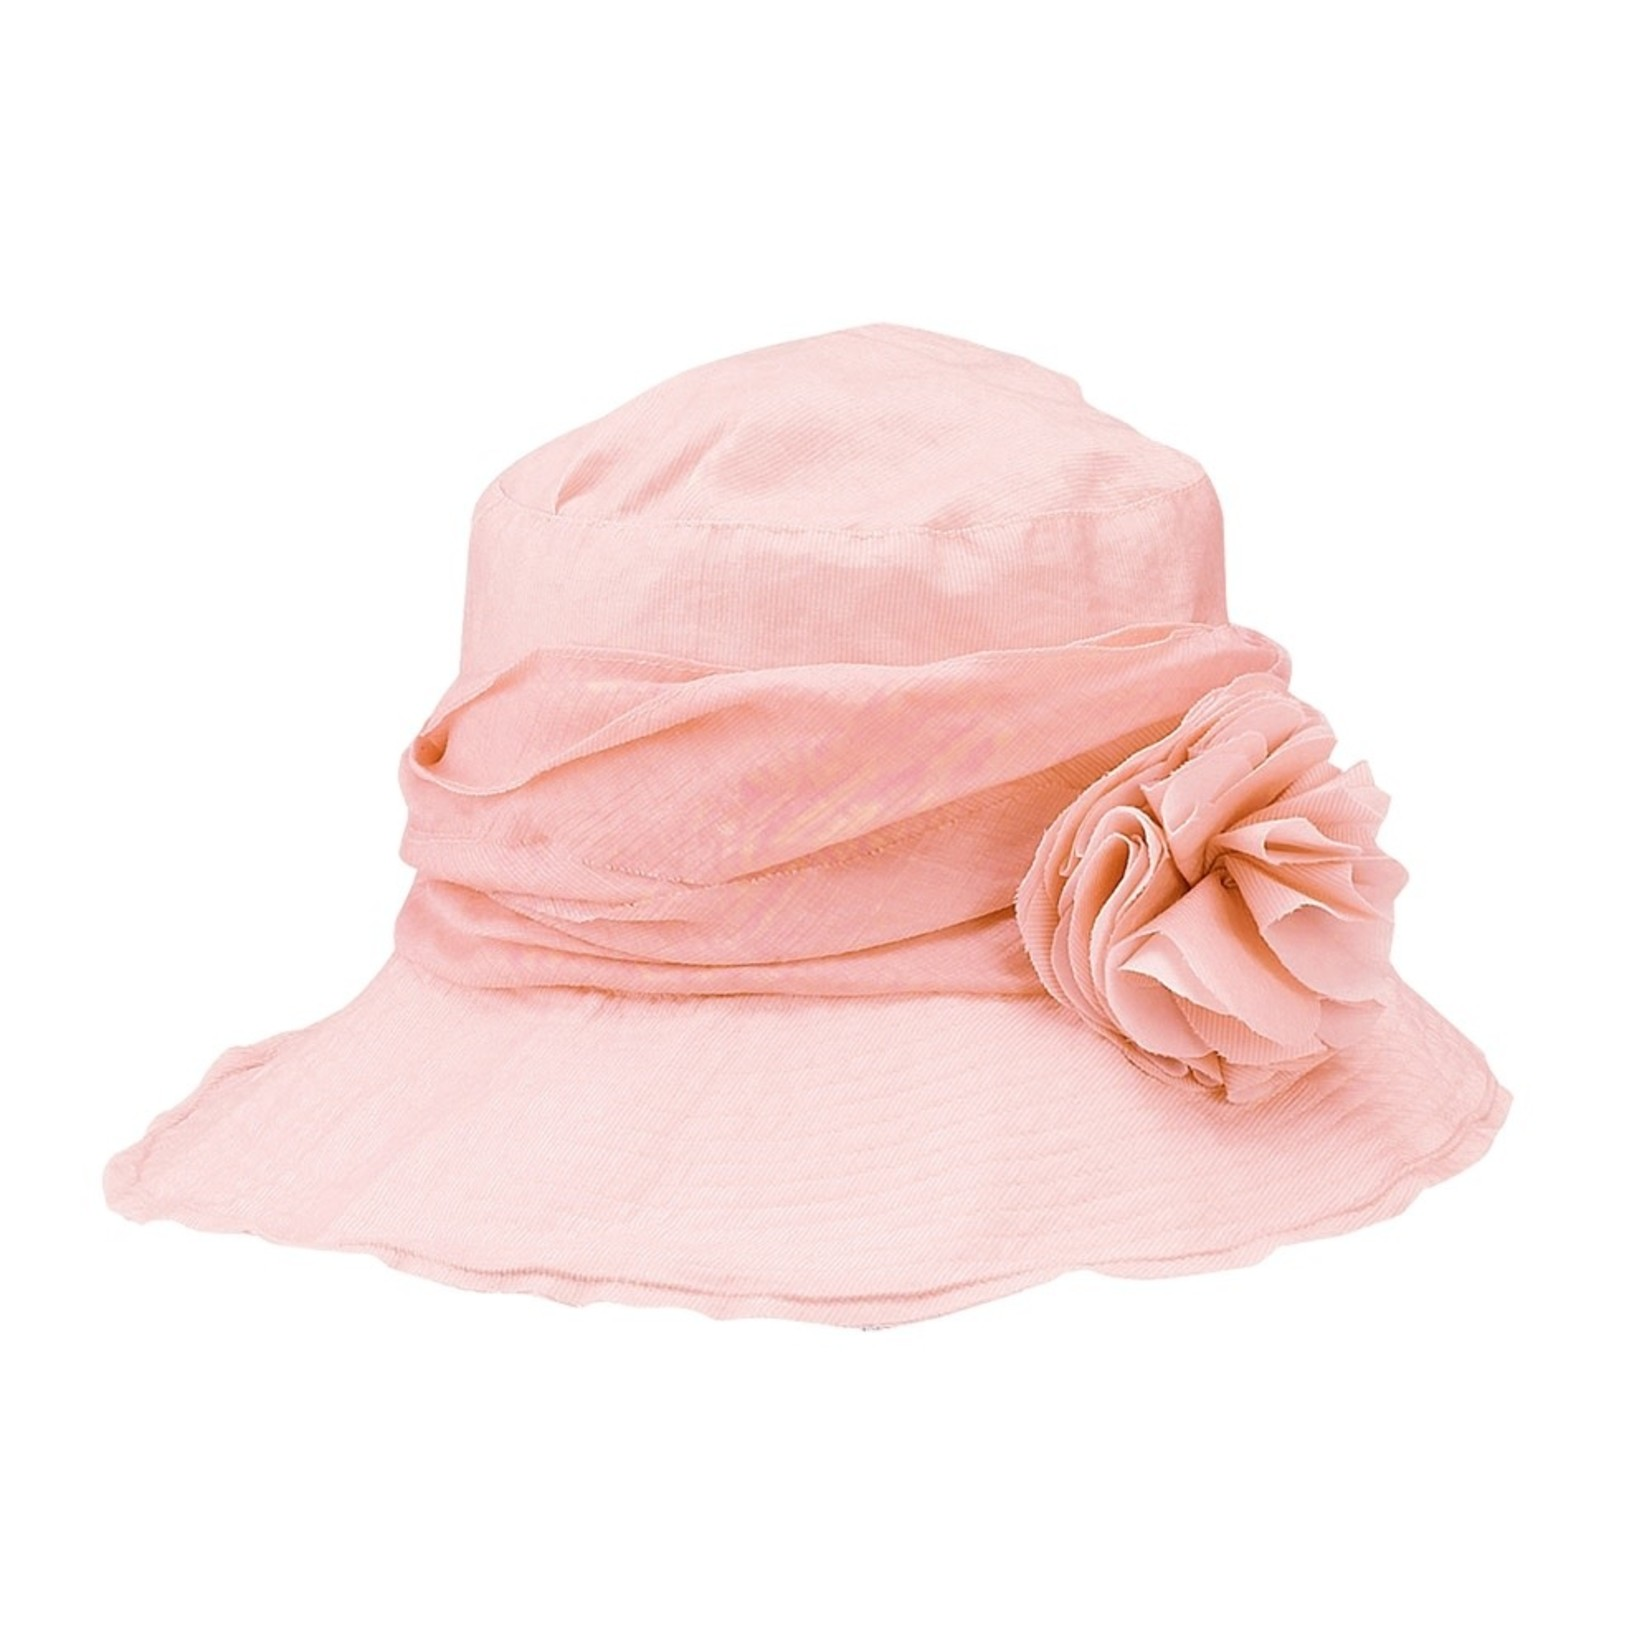 Jeanne Simmons Pink Hat w/ Slanted Brim and Pleated Flower